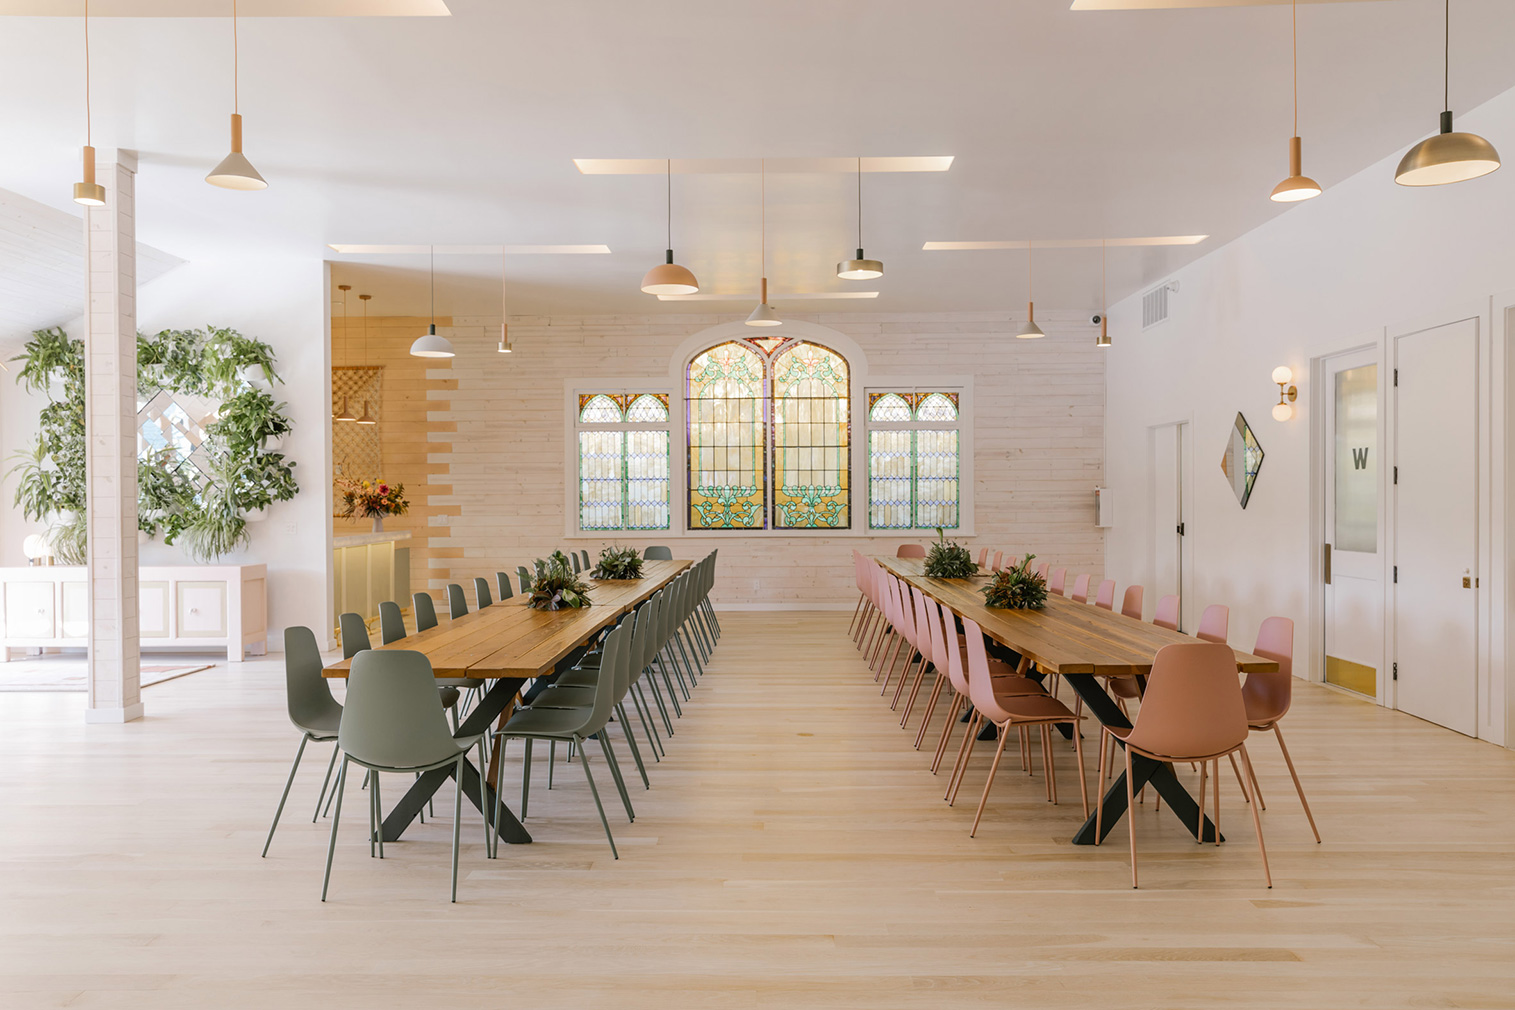 The Ruby Street coworking space is for sale in Los Angeles